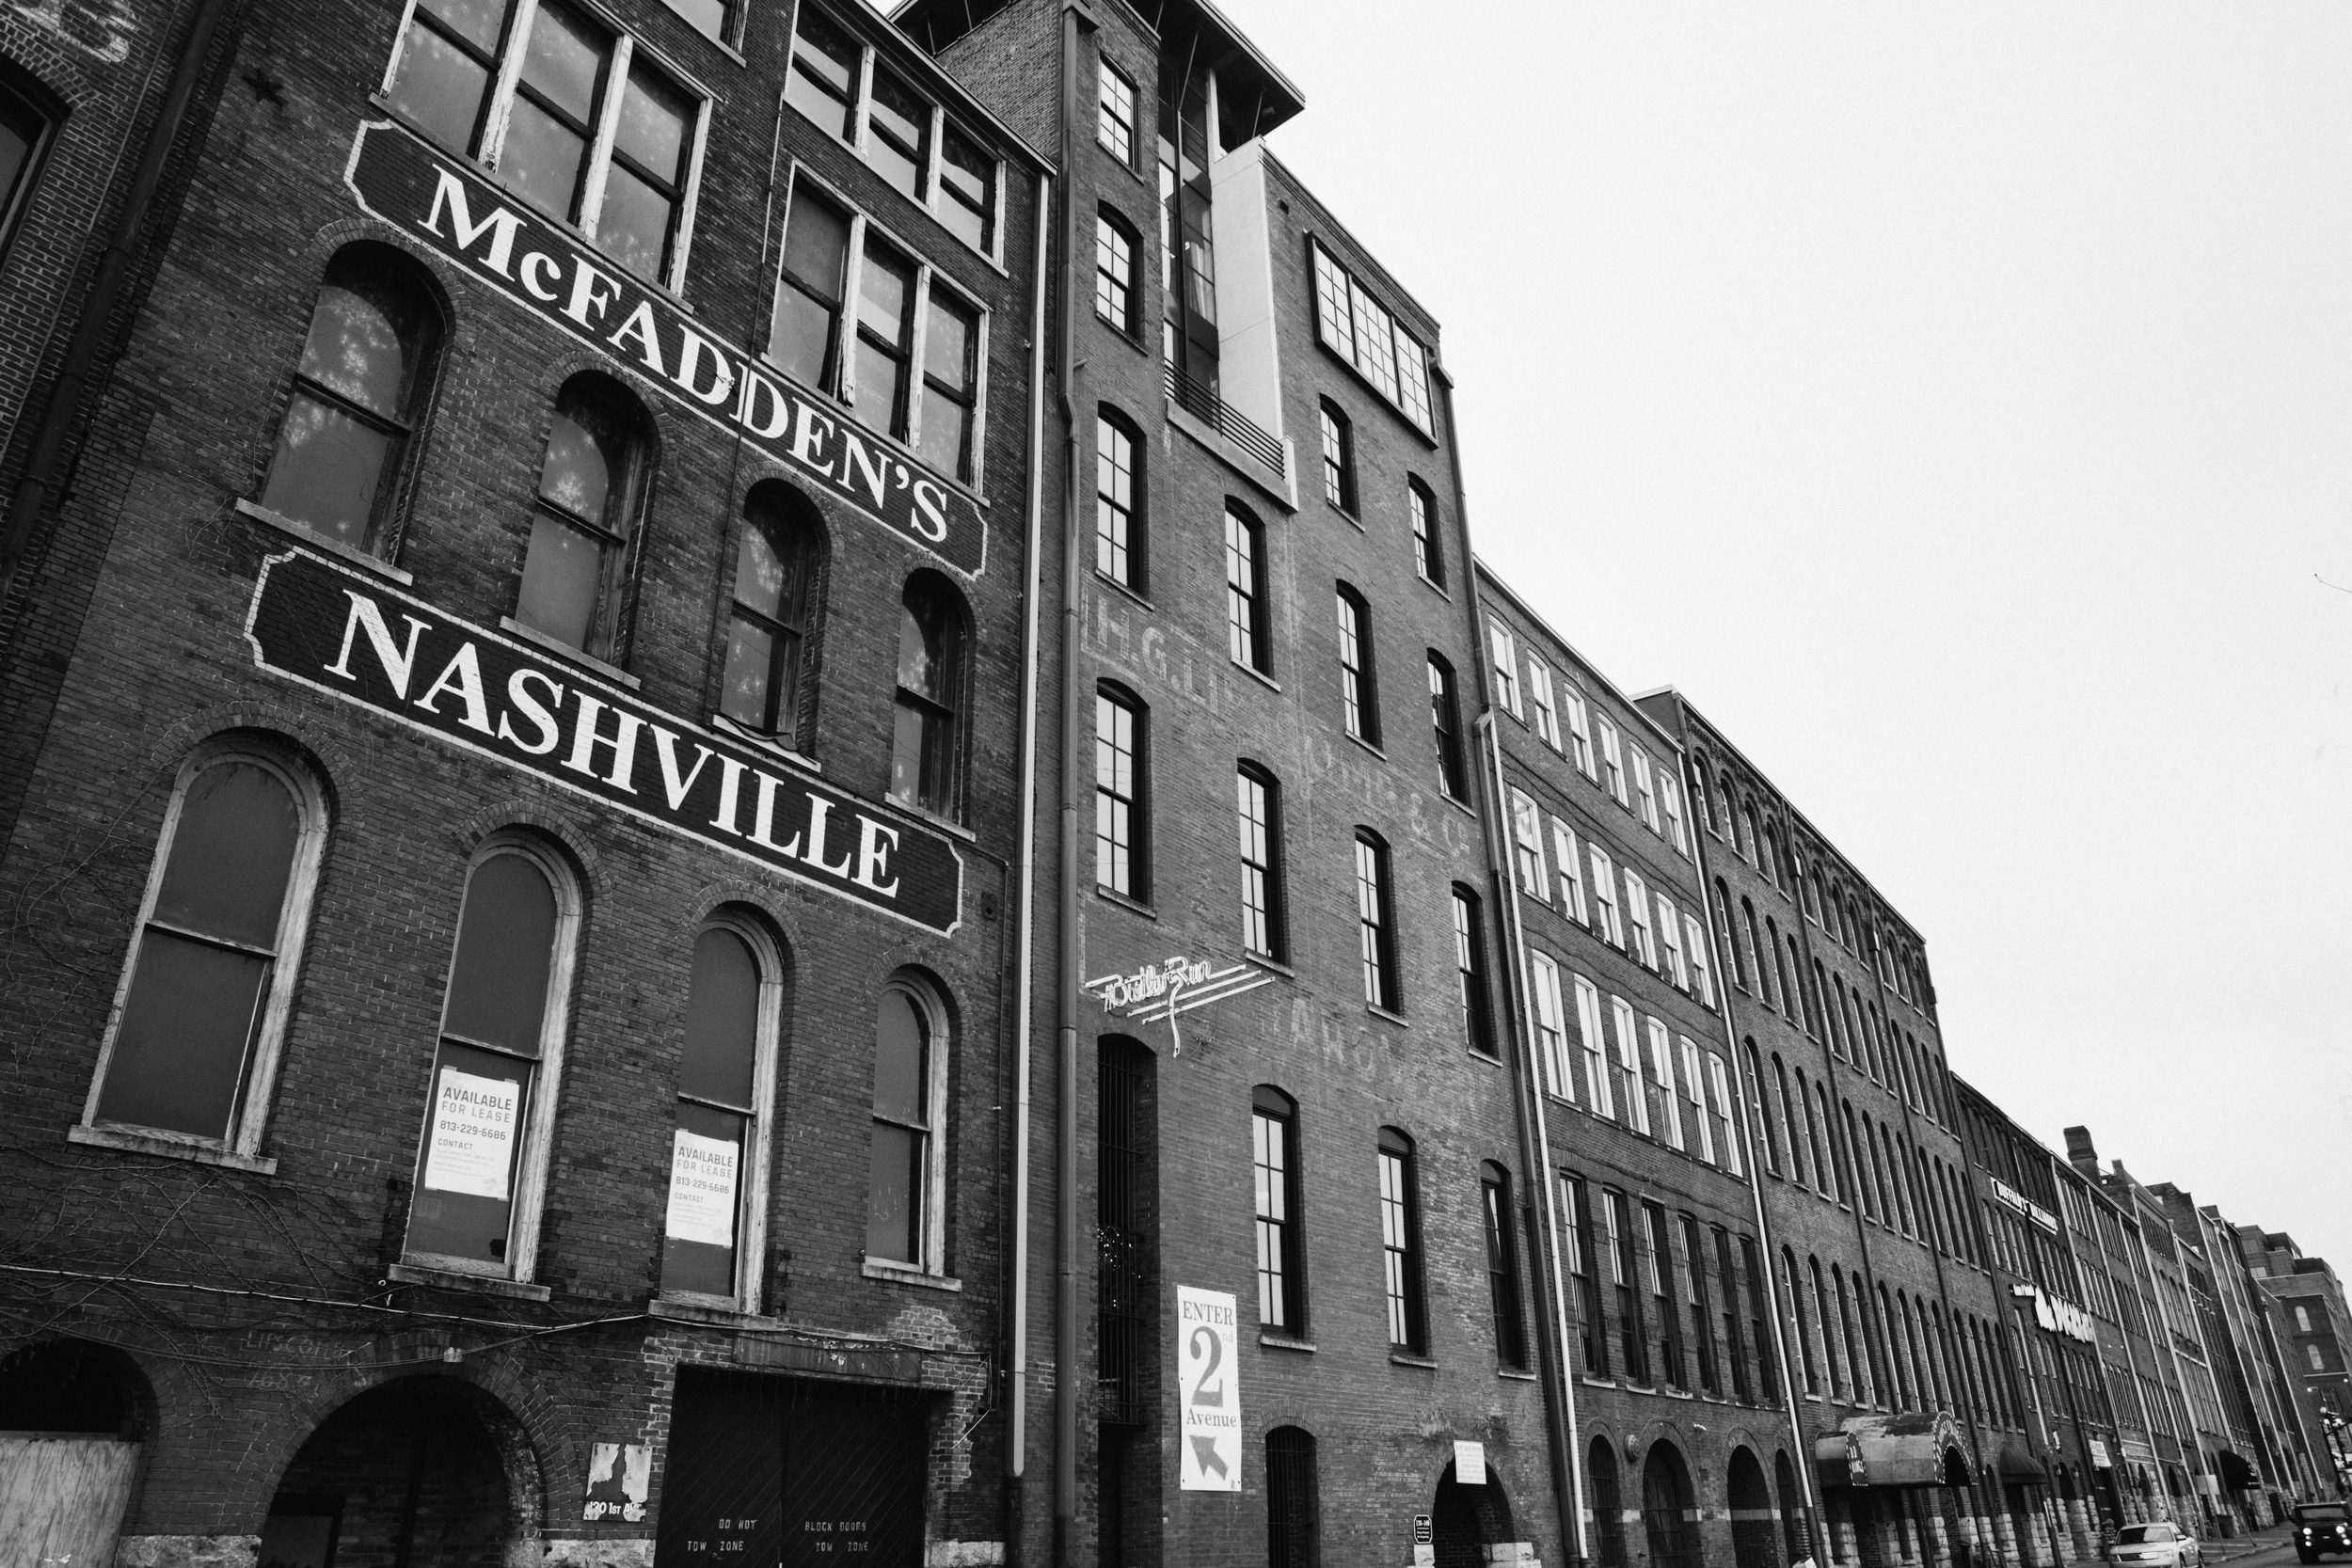 I drove cross country with my mom, and we spent a day in lovely Nashville. The first of many trips there, I'm sure of it.